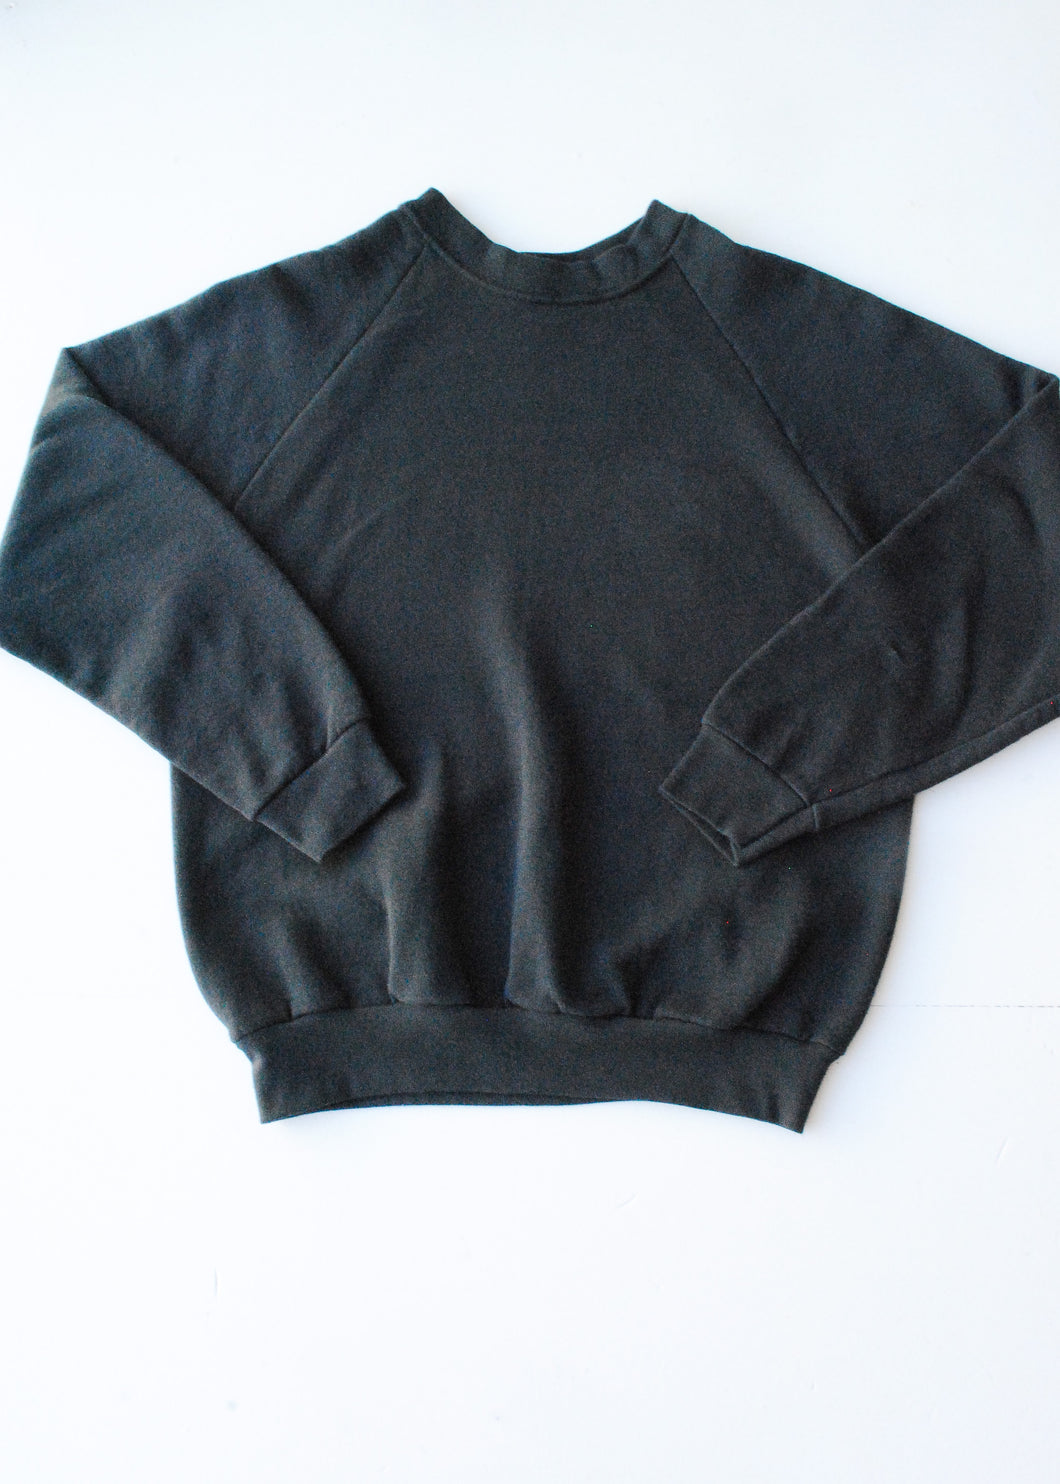 Vintage Black Sweatshirt, Medium